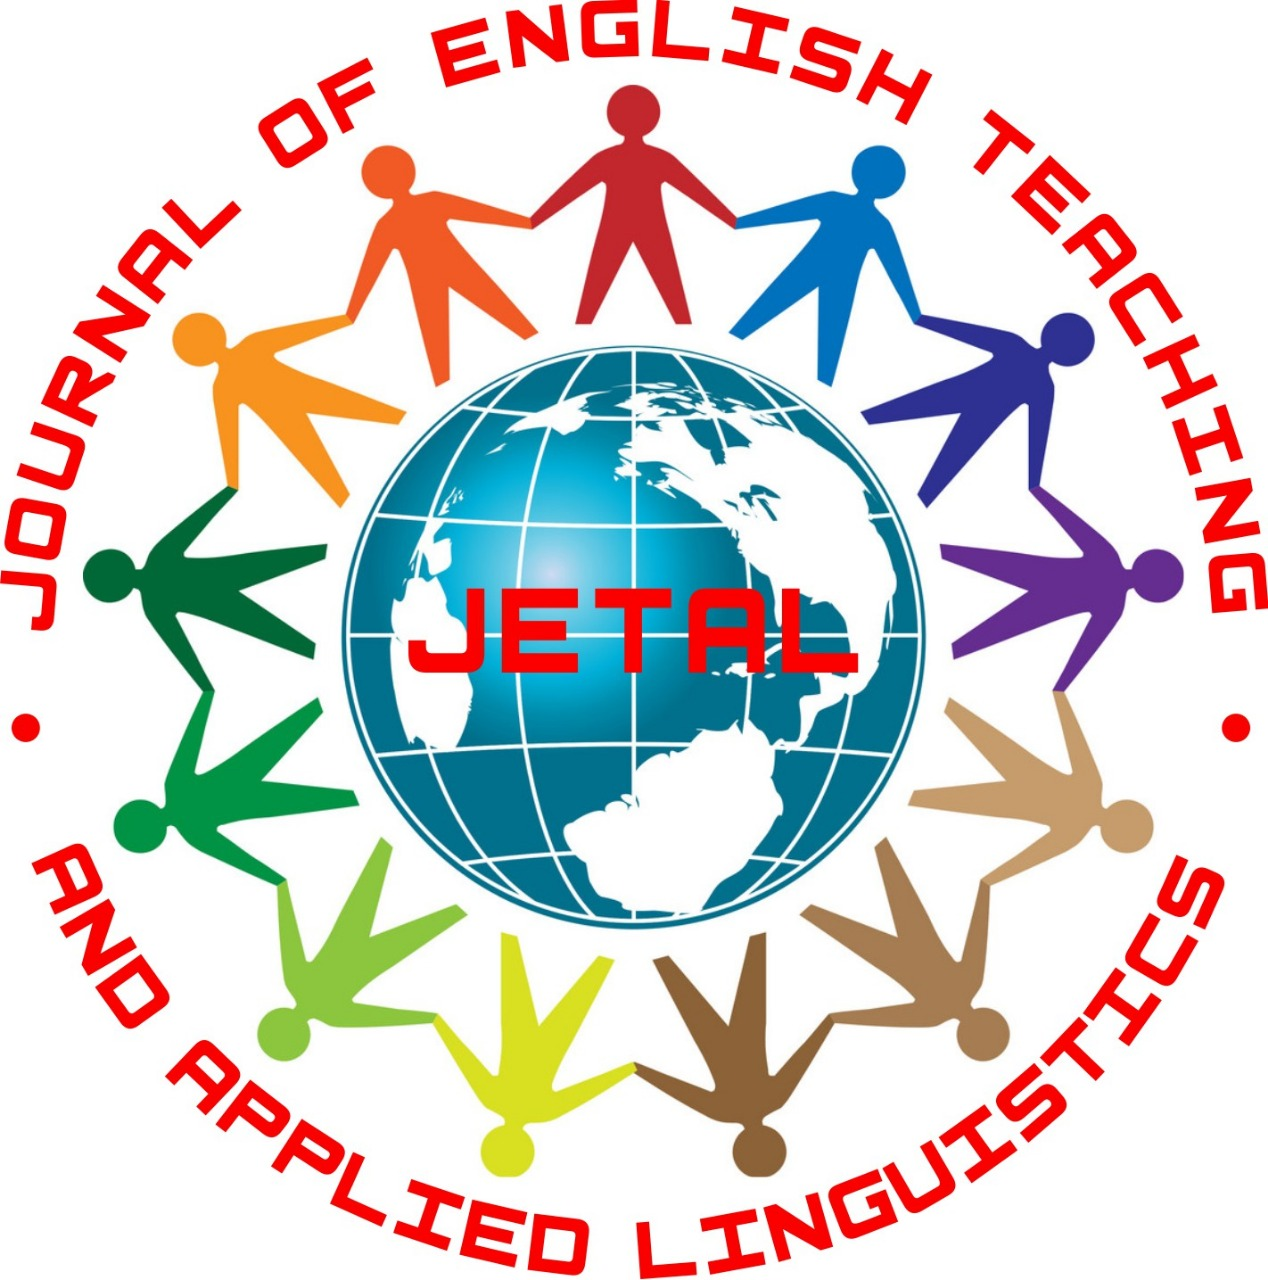 JETAL: Journal of English Teaching and Applied Linguistics